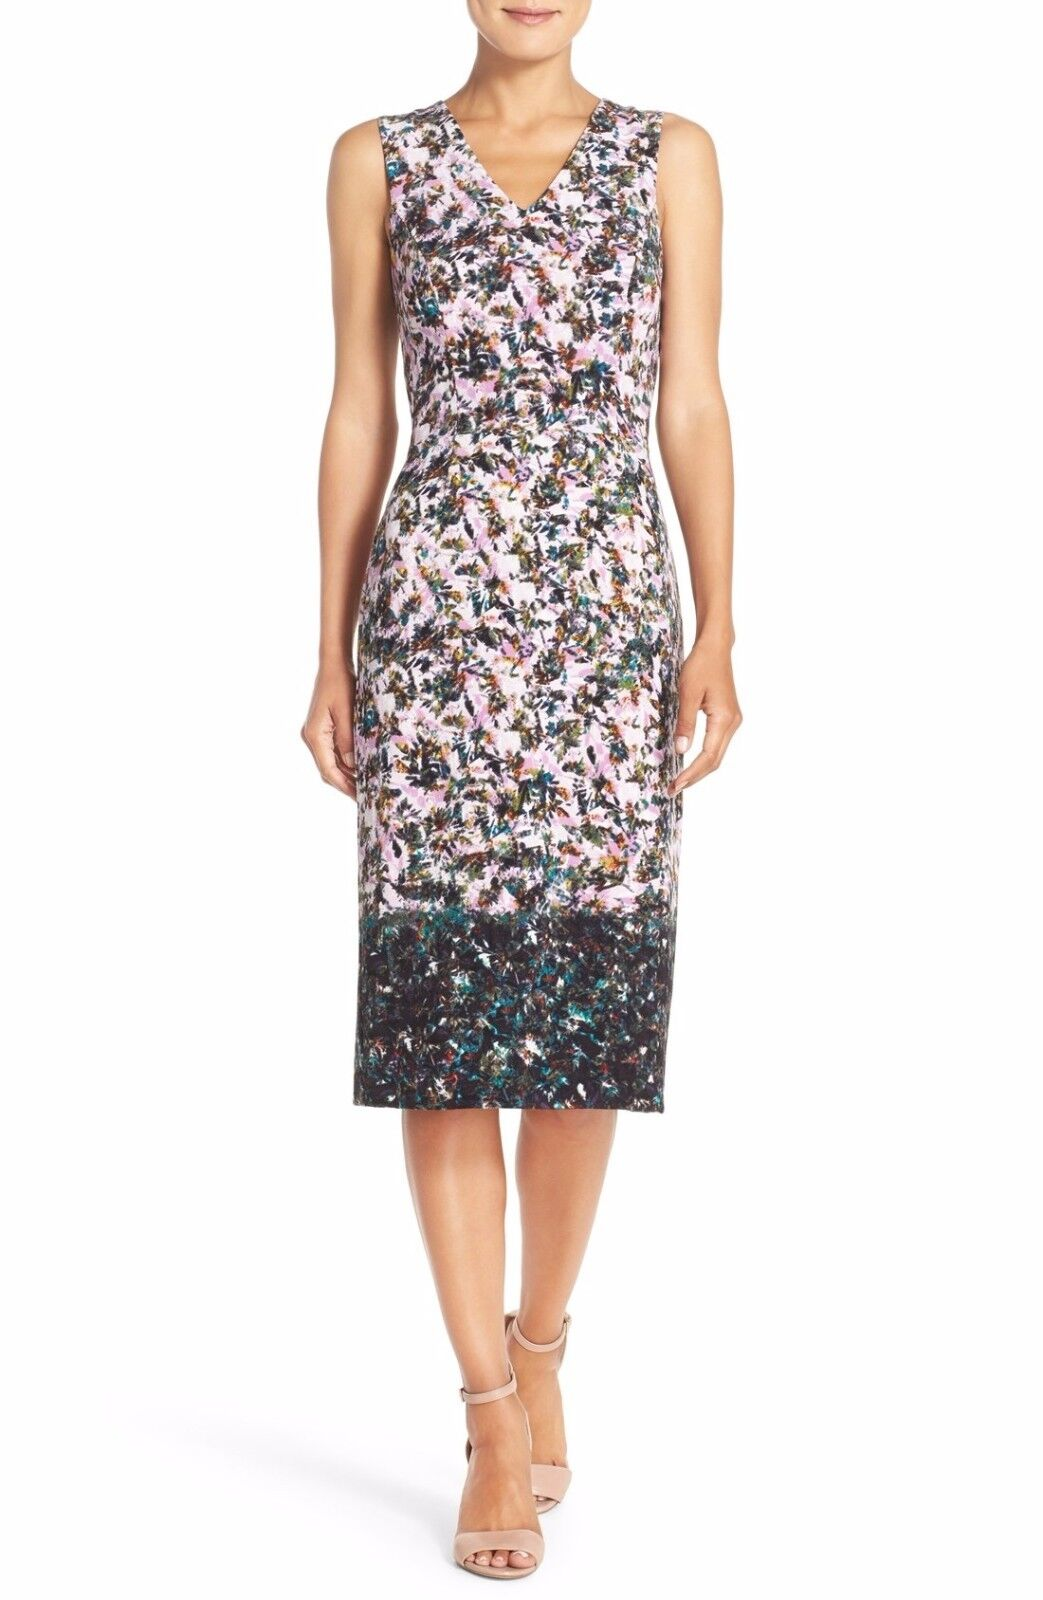 MAGGY LONDON PRINT STRETCH CREPE MIDI SHEATH DRESS sz 6